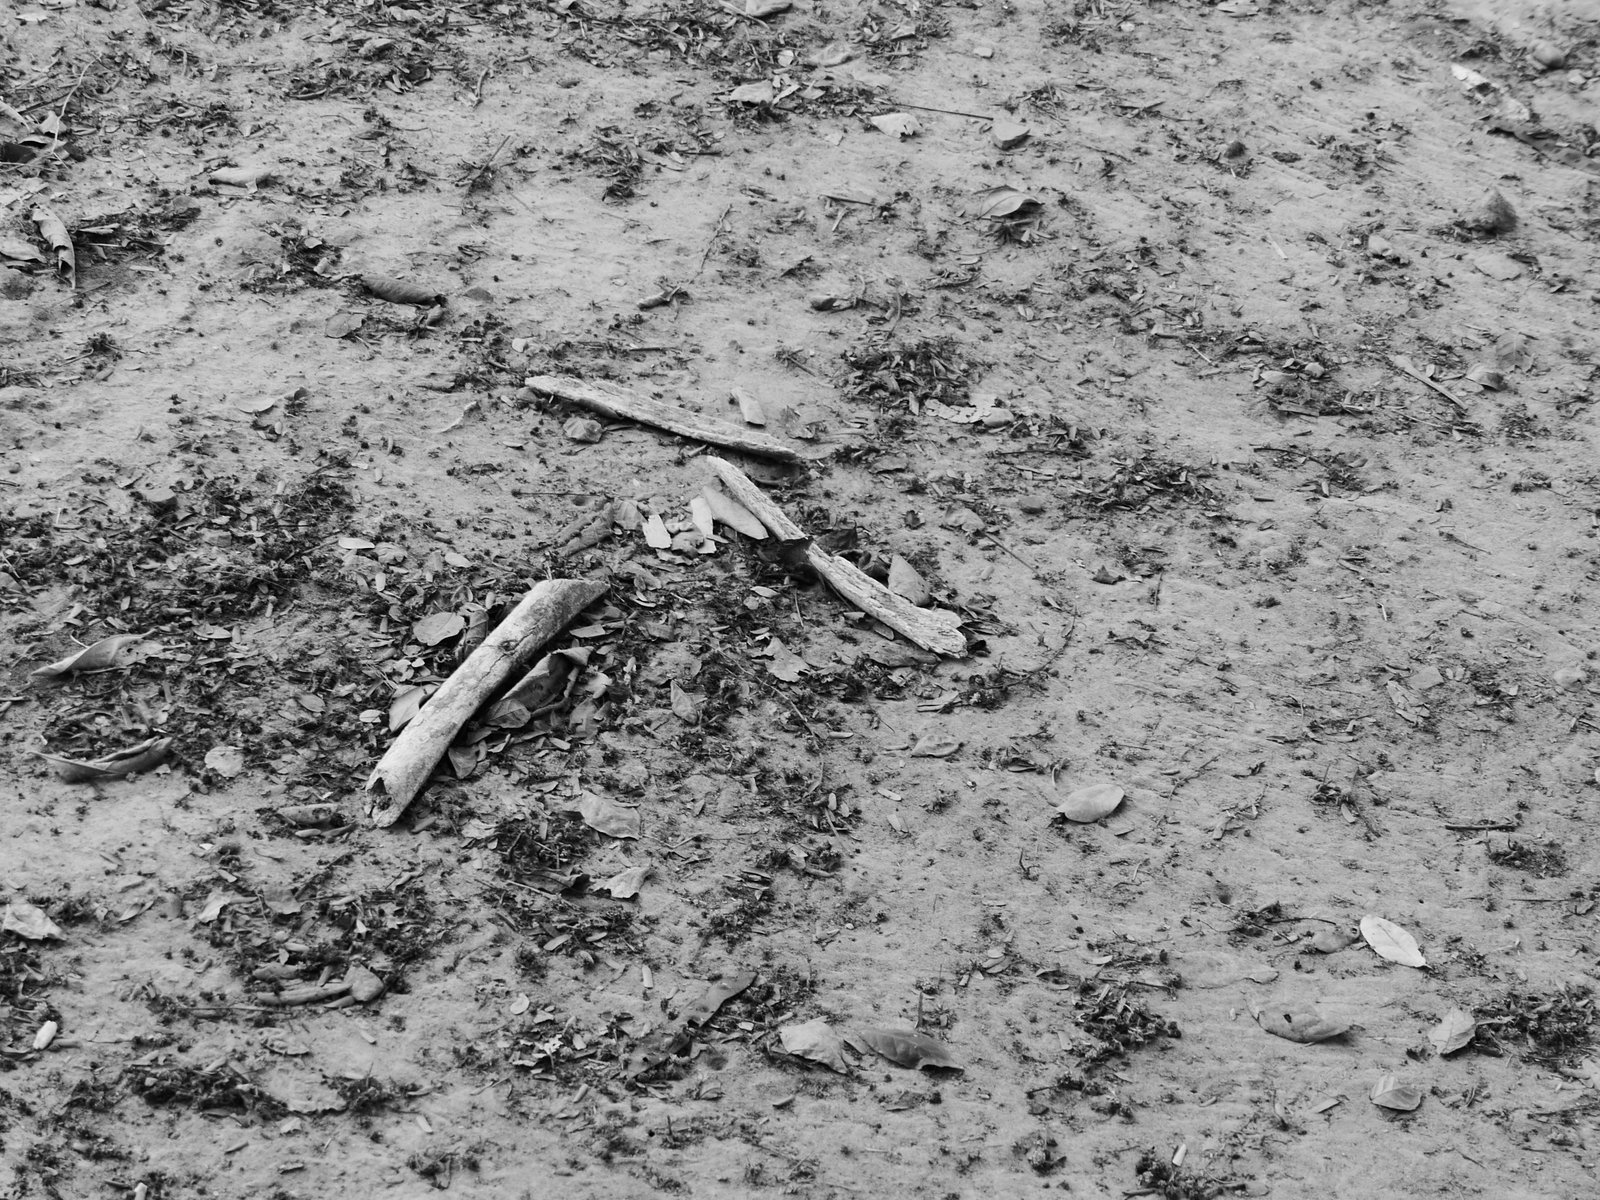 Skeletal remains in one of the mass graves at Choeung Ek. Many of the mass graves here have been left undisturbed, but bones & clothing often are uncovered after heavy rains.